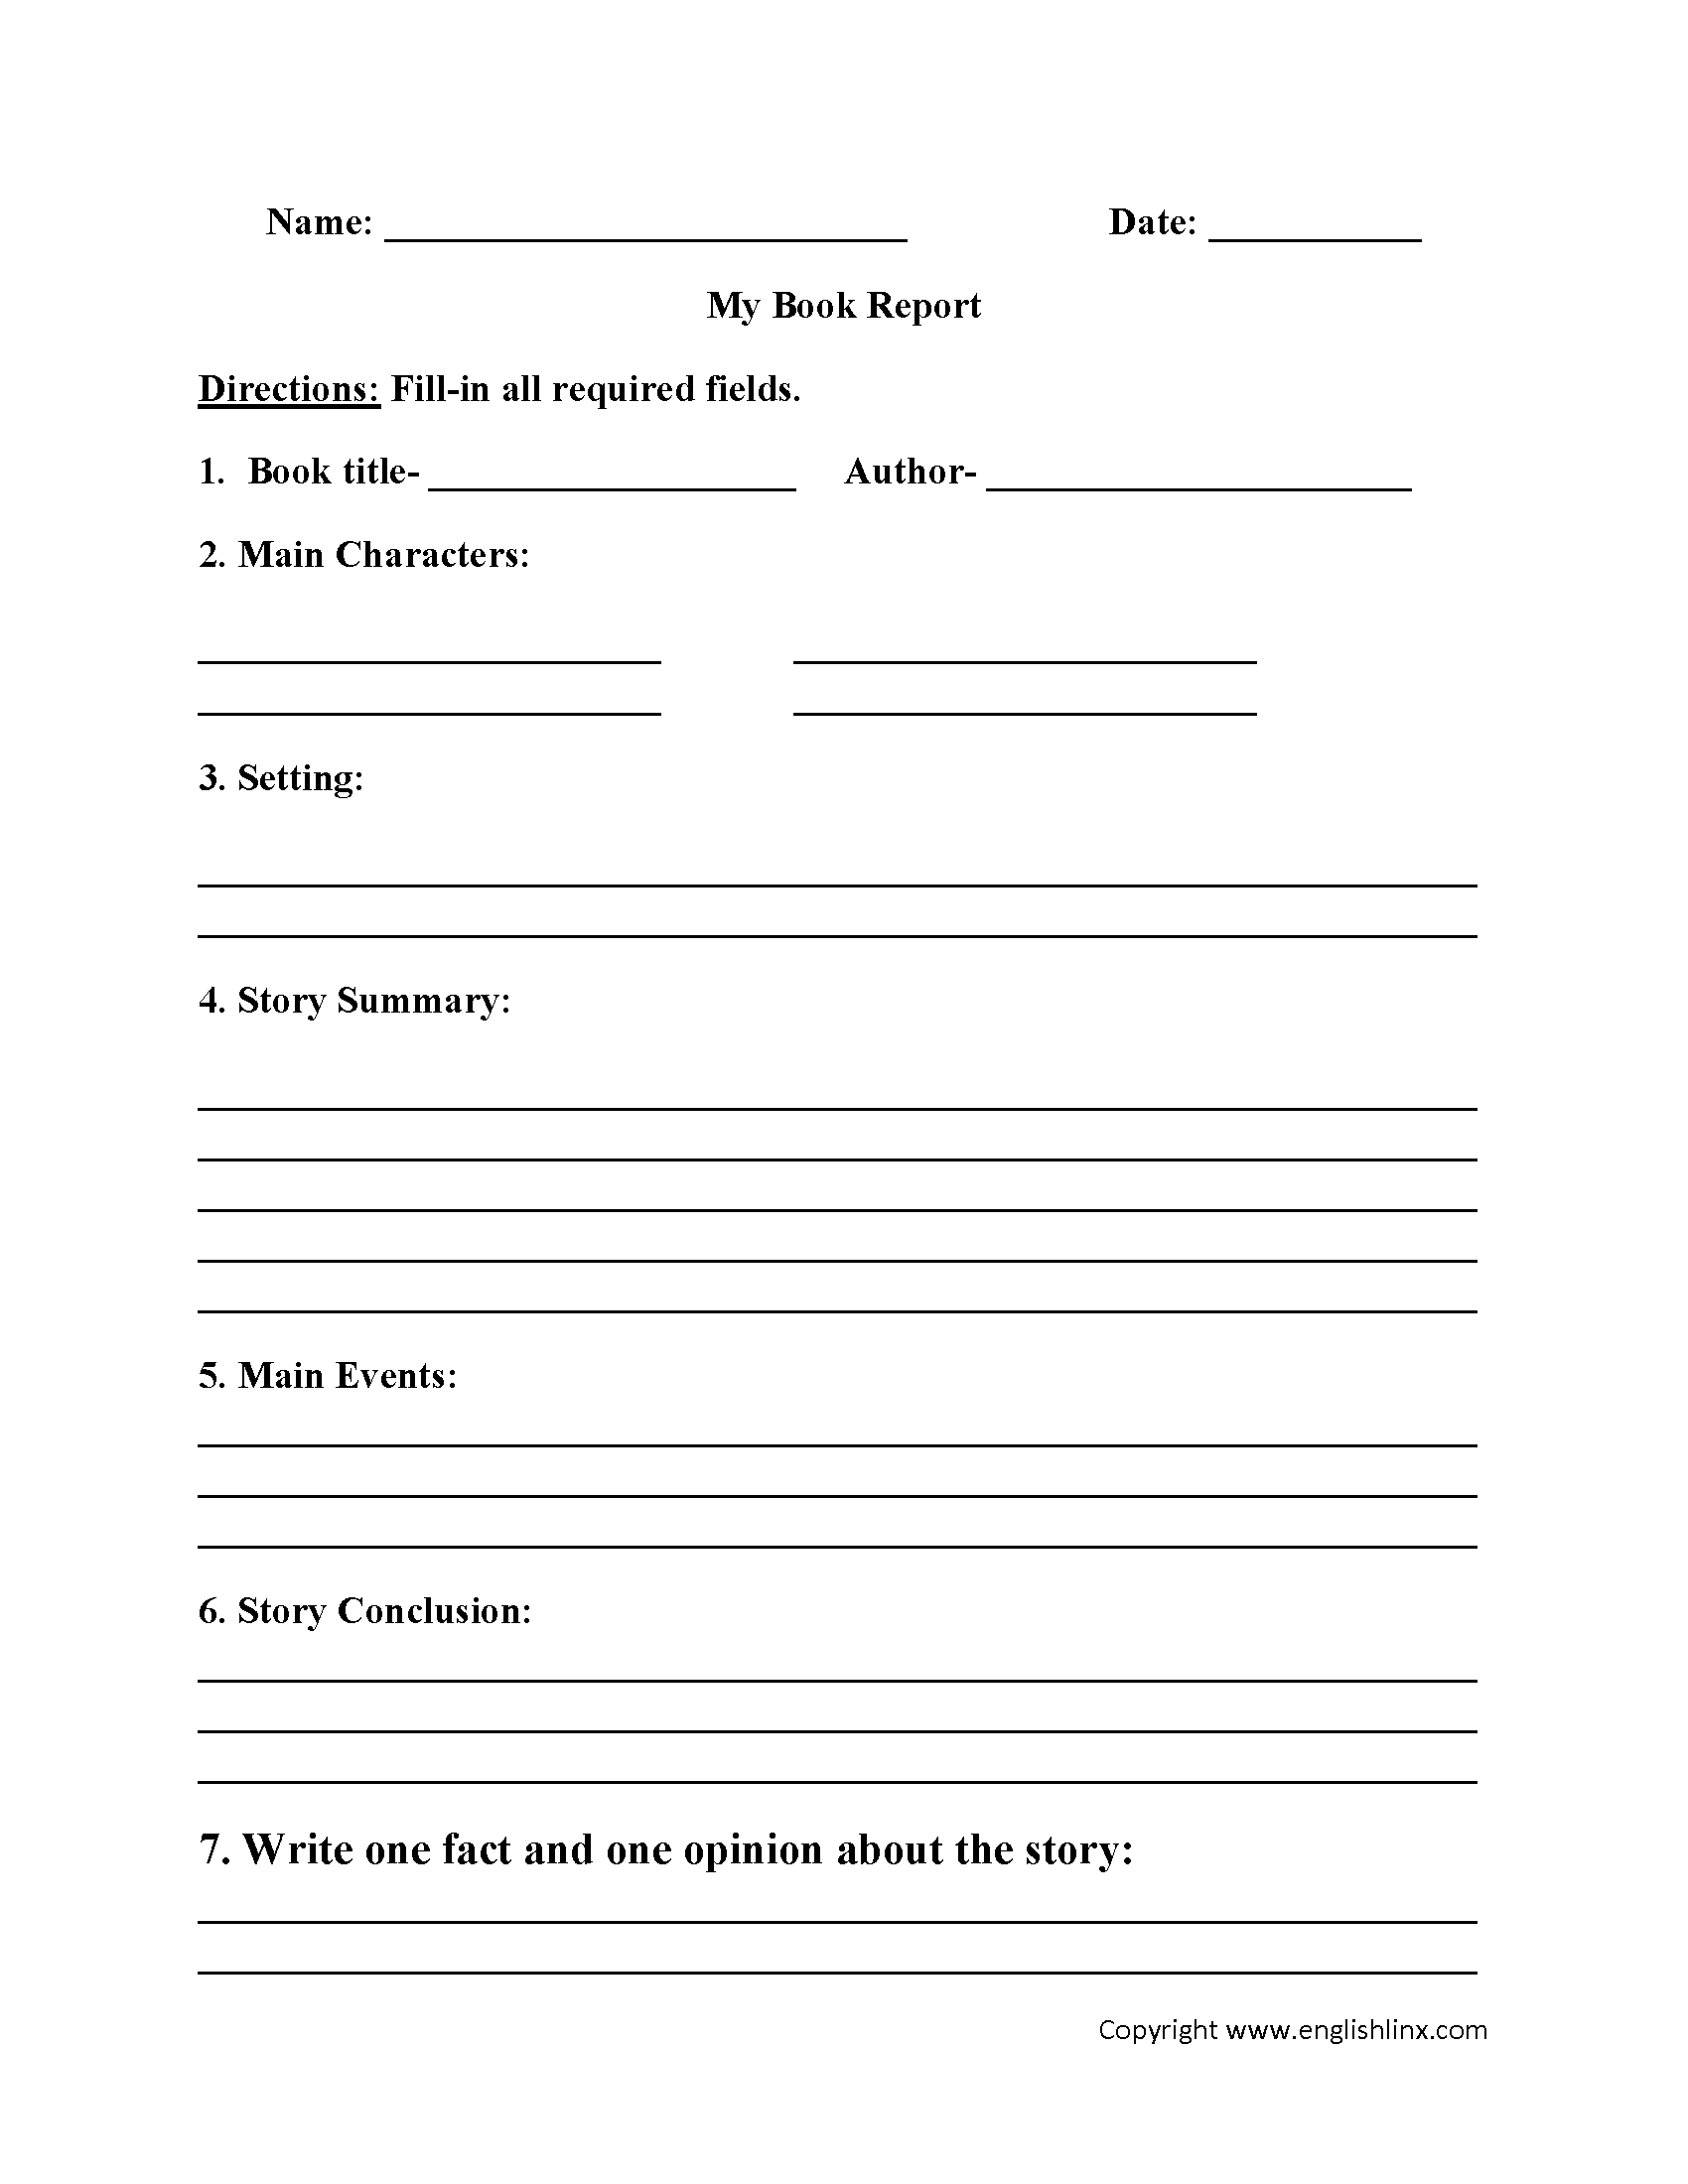 Englishlinx | Book Report Worksheets - Book Report Template Free Printable